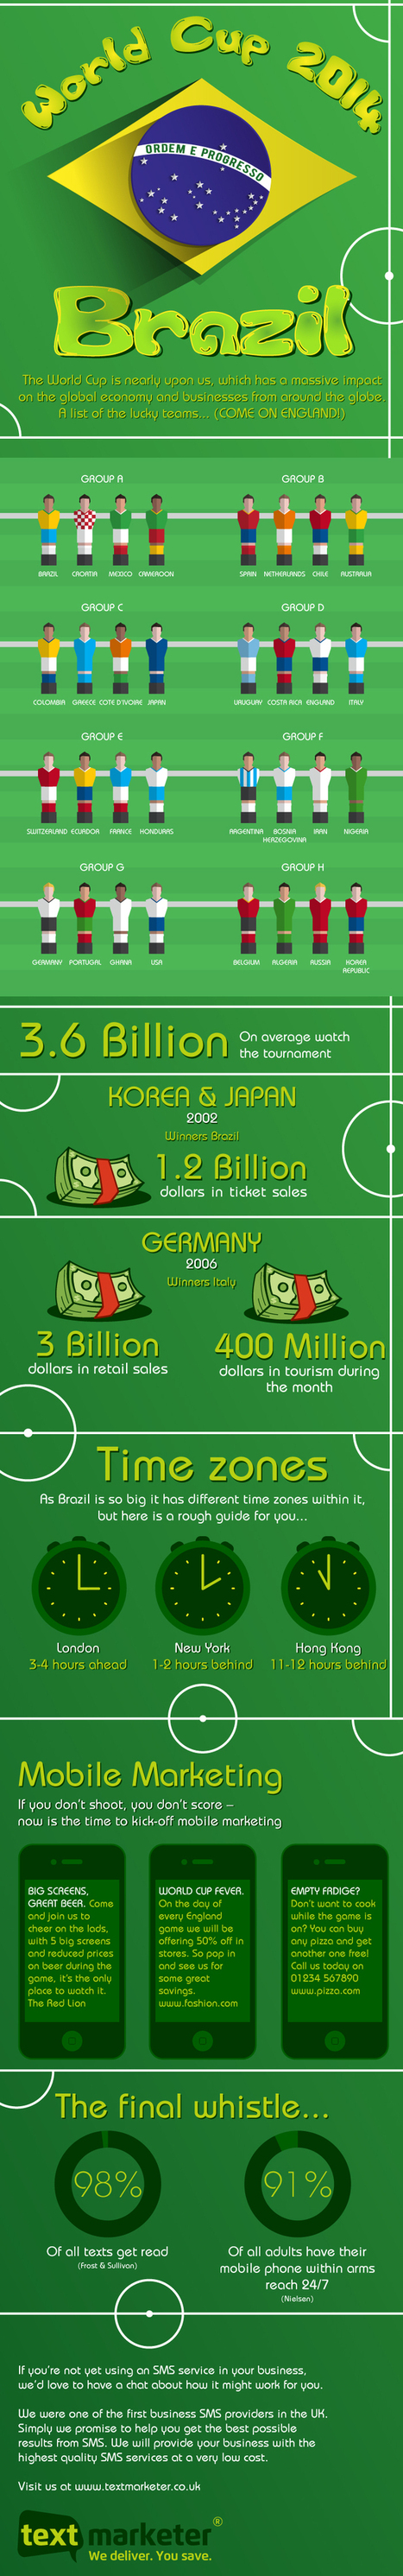 The World Cup 2014 – Brazil - Business 2 Community | Digital-News on Scoop.it today | Scoop.it